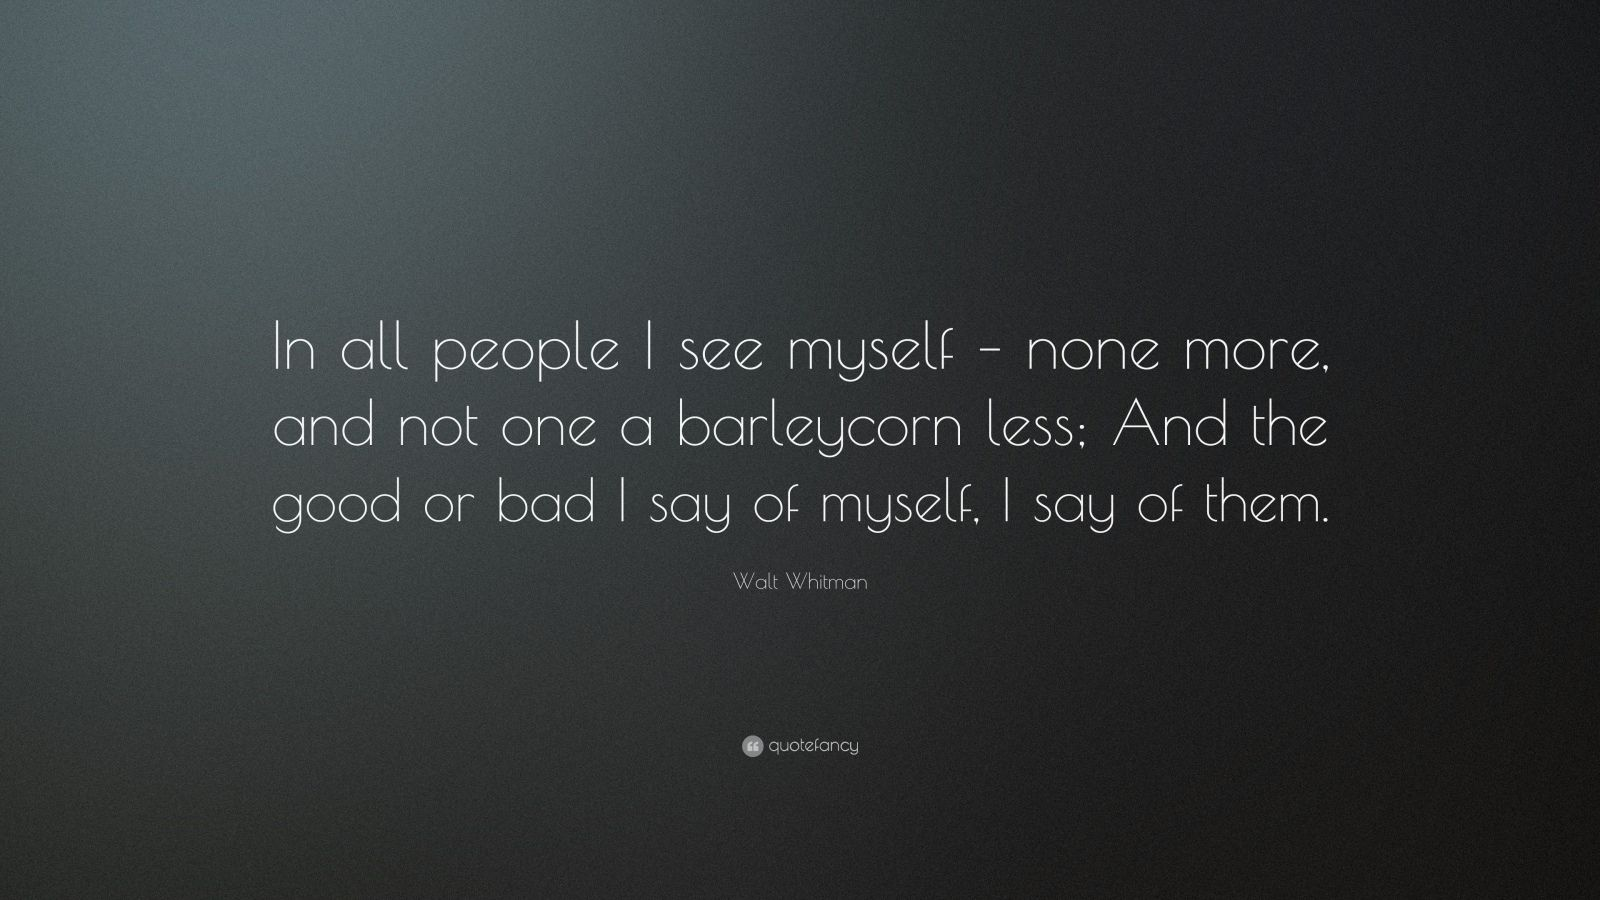 """Walt Whitman Quote: """"In all people I see myself – none more, and not one a barleycorn less; And the good or bad I say of myself, I say of them."""""""